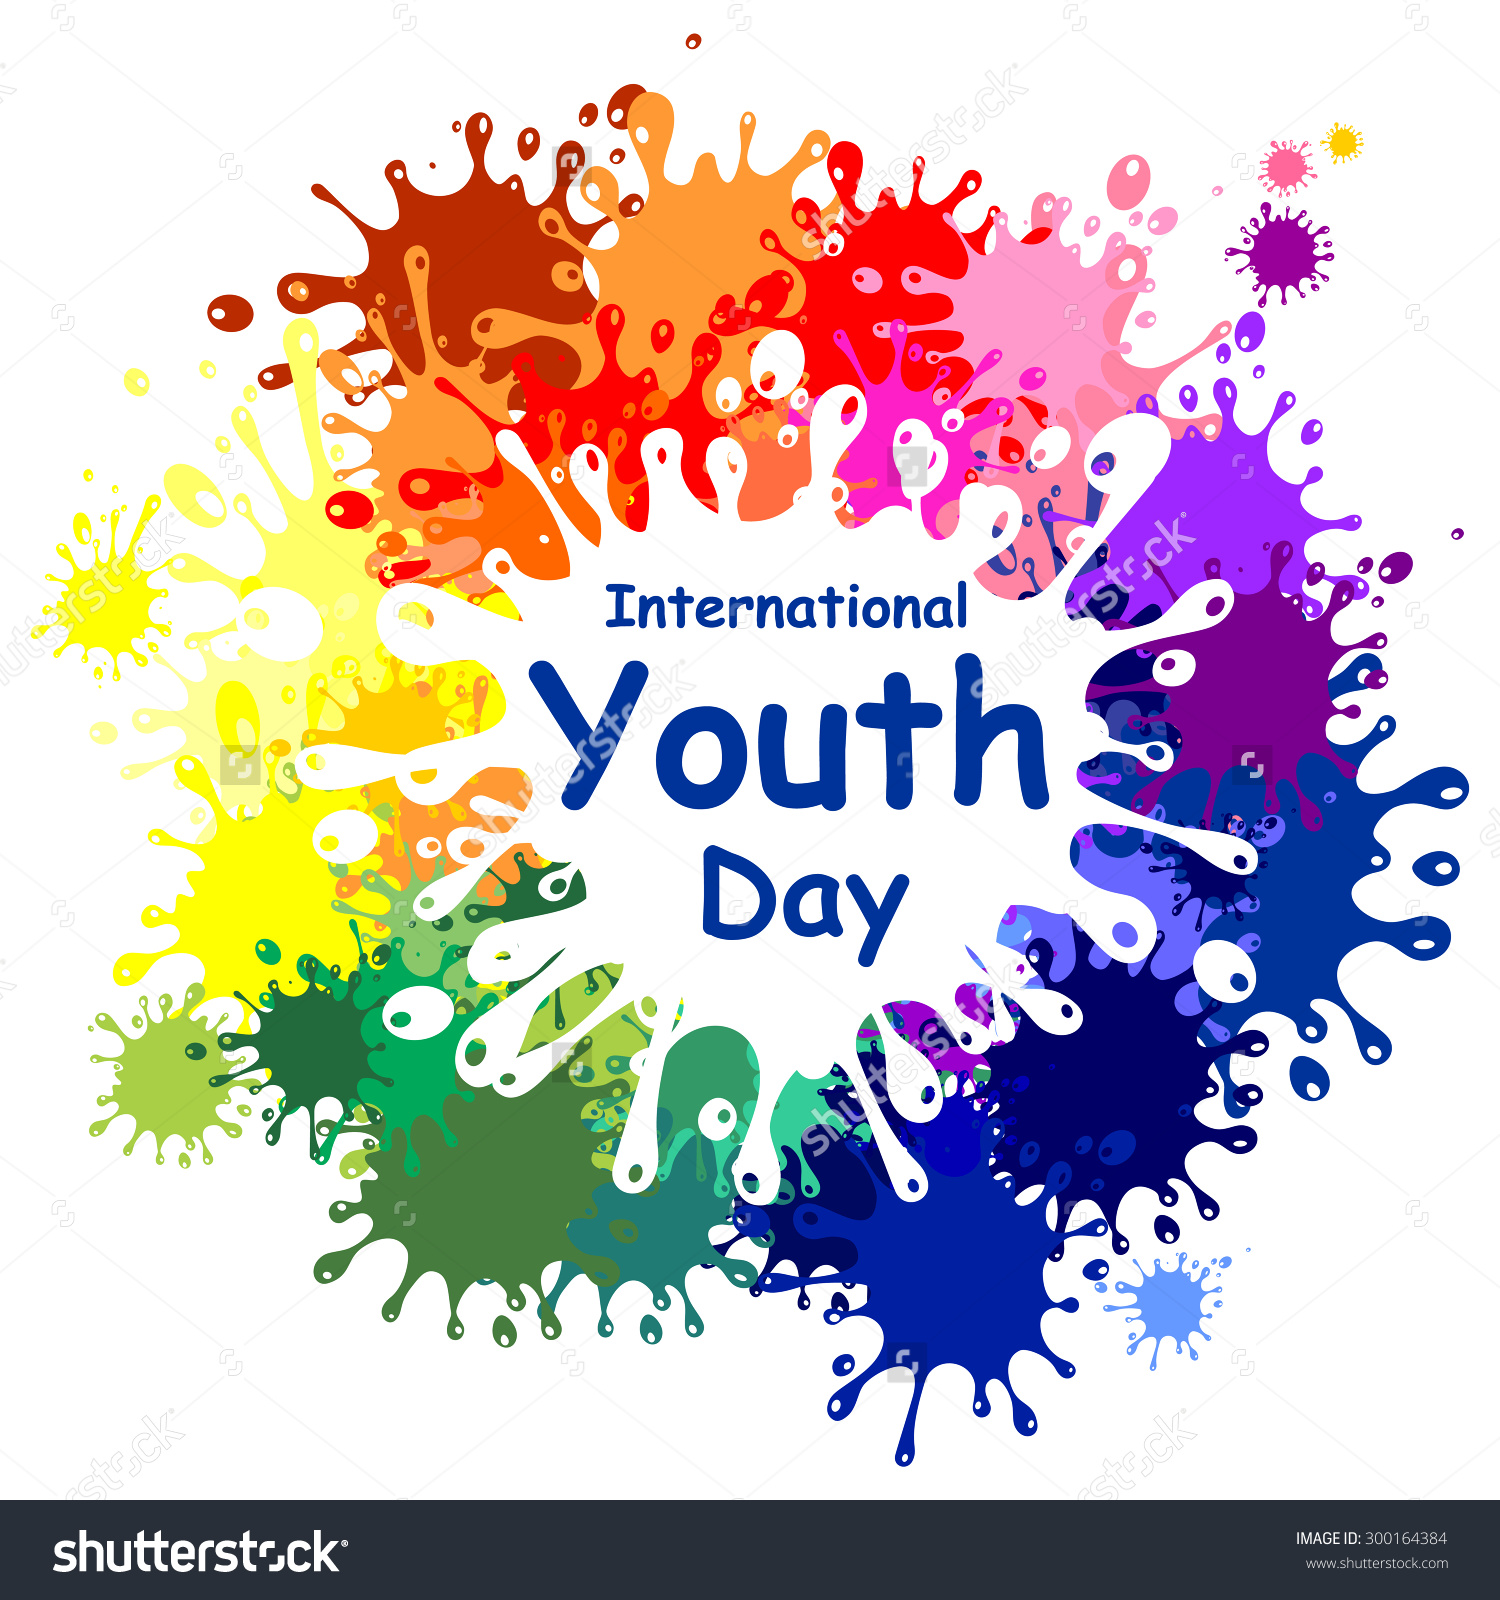 X' PLORICA: INTERNATIONAL YOUTH DAY - August 12